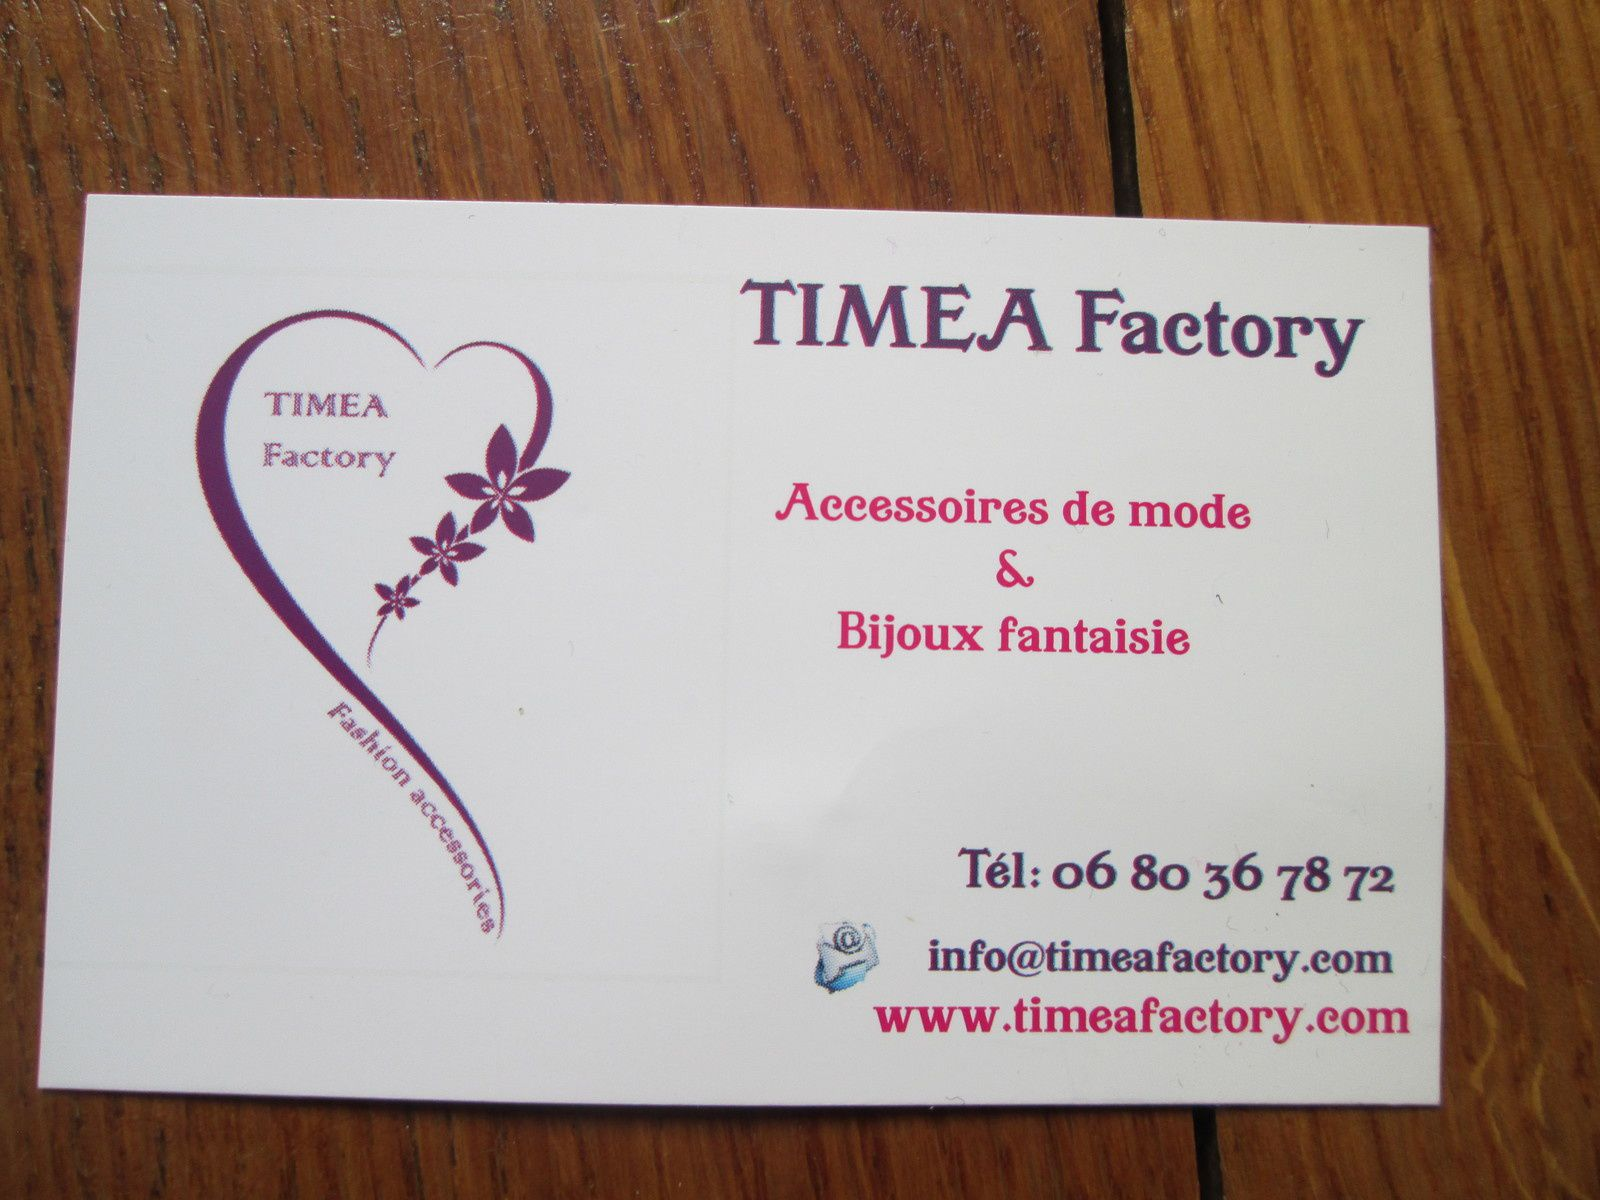 TimeaFactory